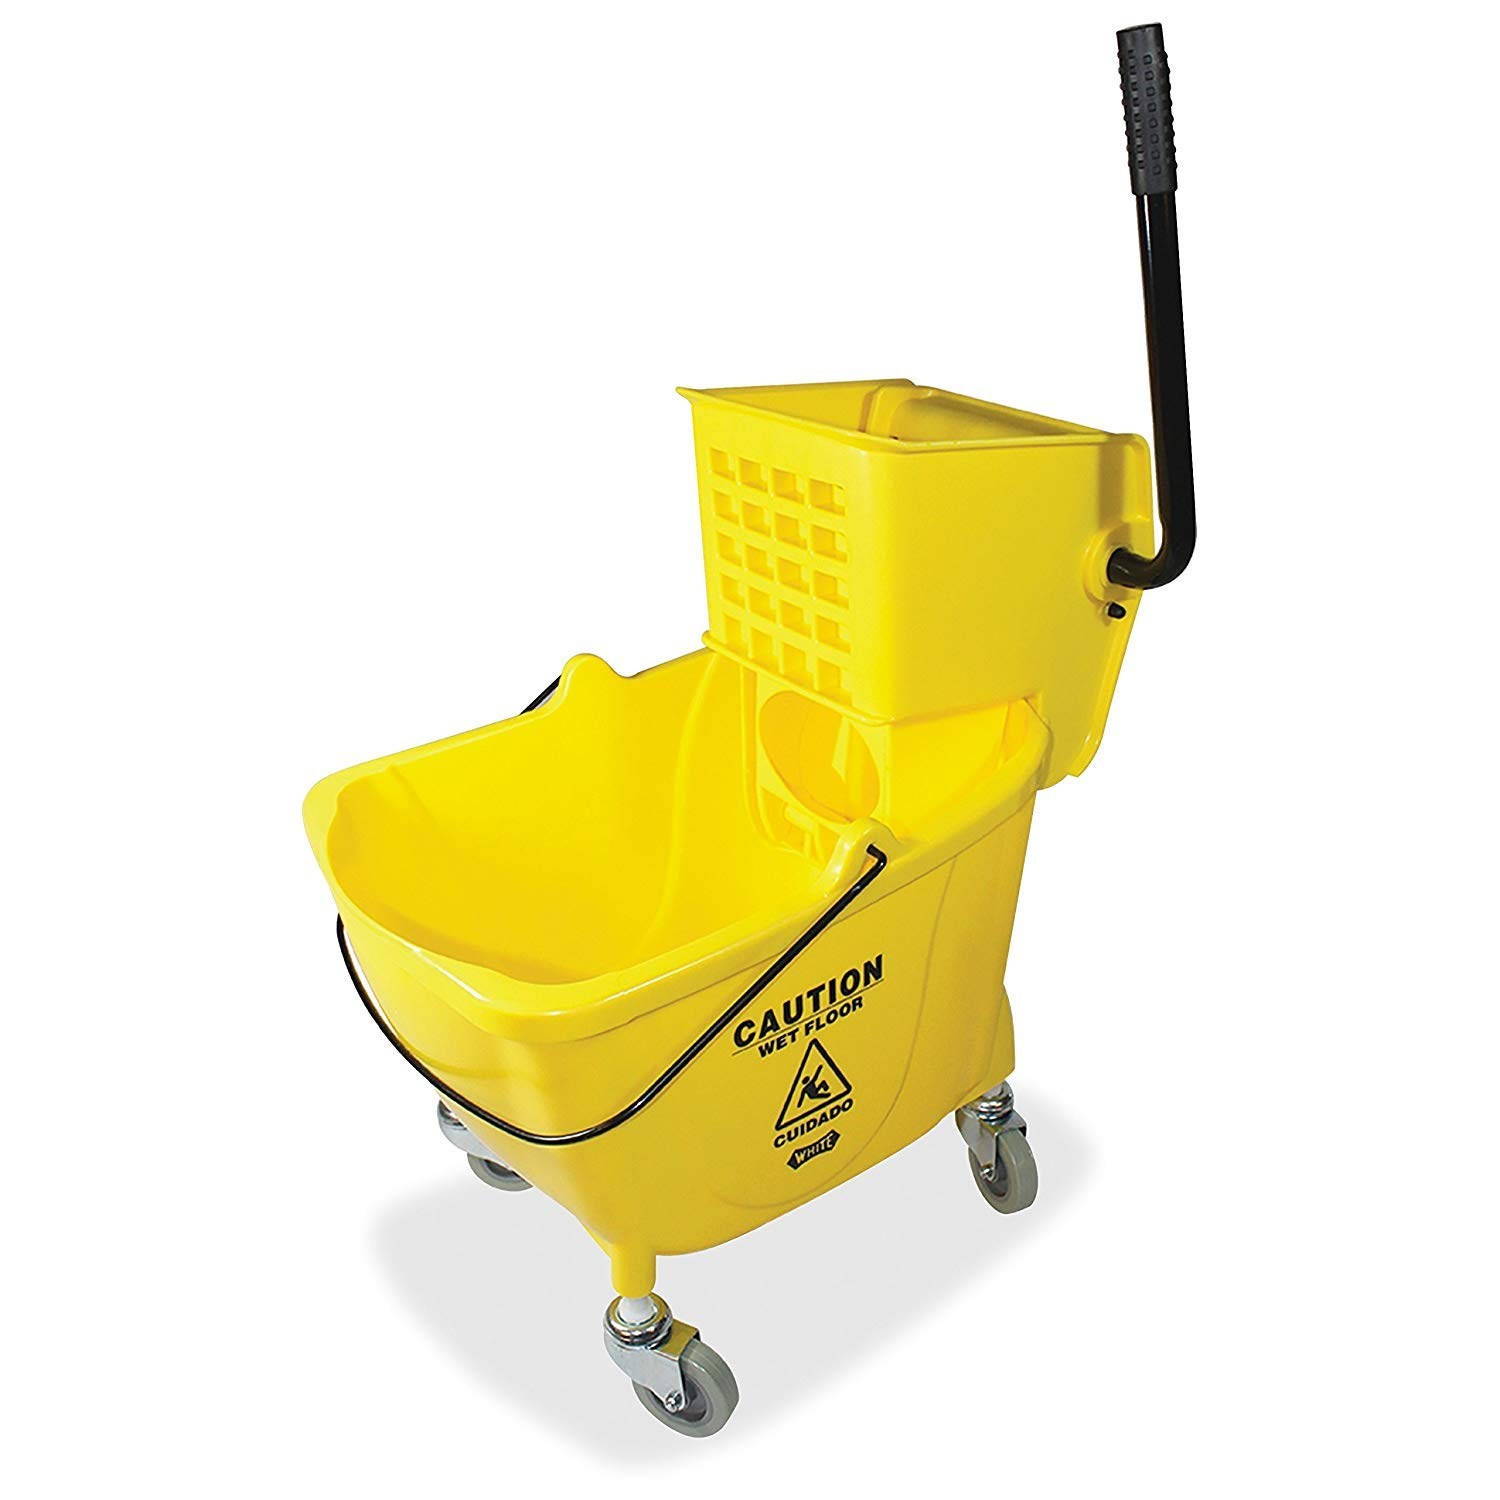 Genuine Joe GJO02347 Side Press Wringer Mop Bucket, Yellow (3 Units) by Genuine Joe (Image #1)